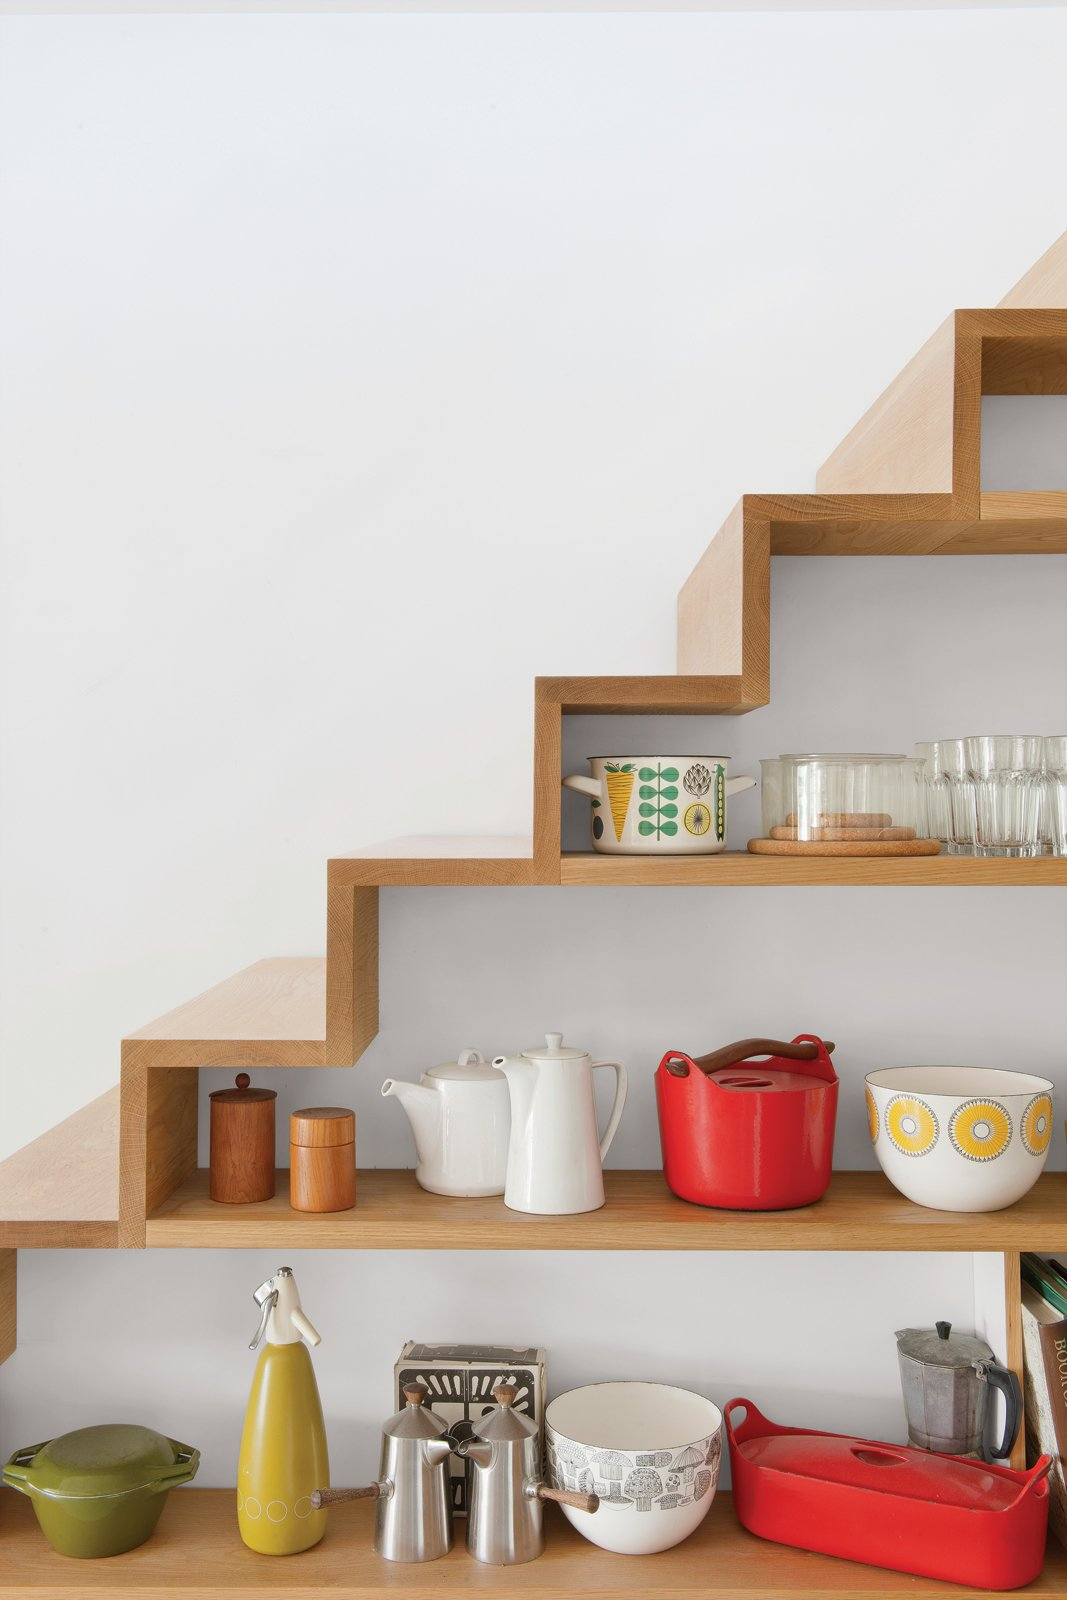 Storage Room and Shelves Storage Type A closer look at the shelving built into the staircase in the kitchen.  Photo 6 of 18 in An Obsessed Designer Fills Her Home with Vintage Finds